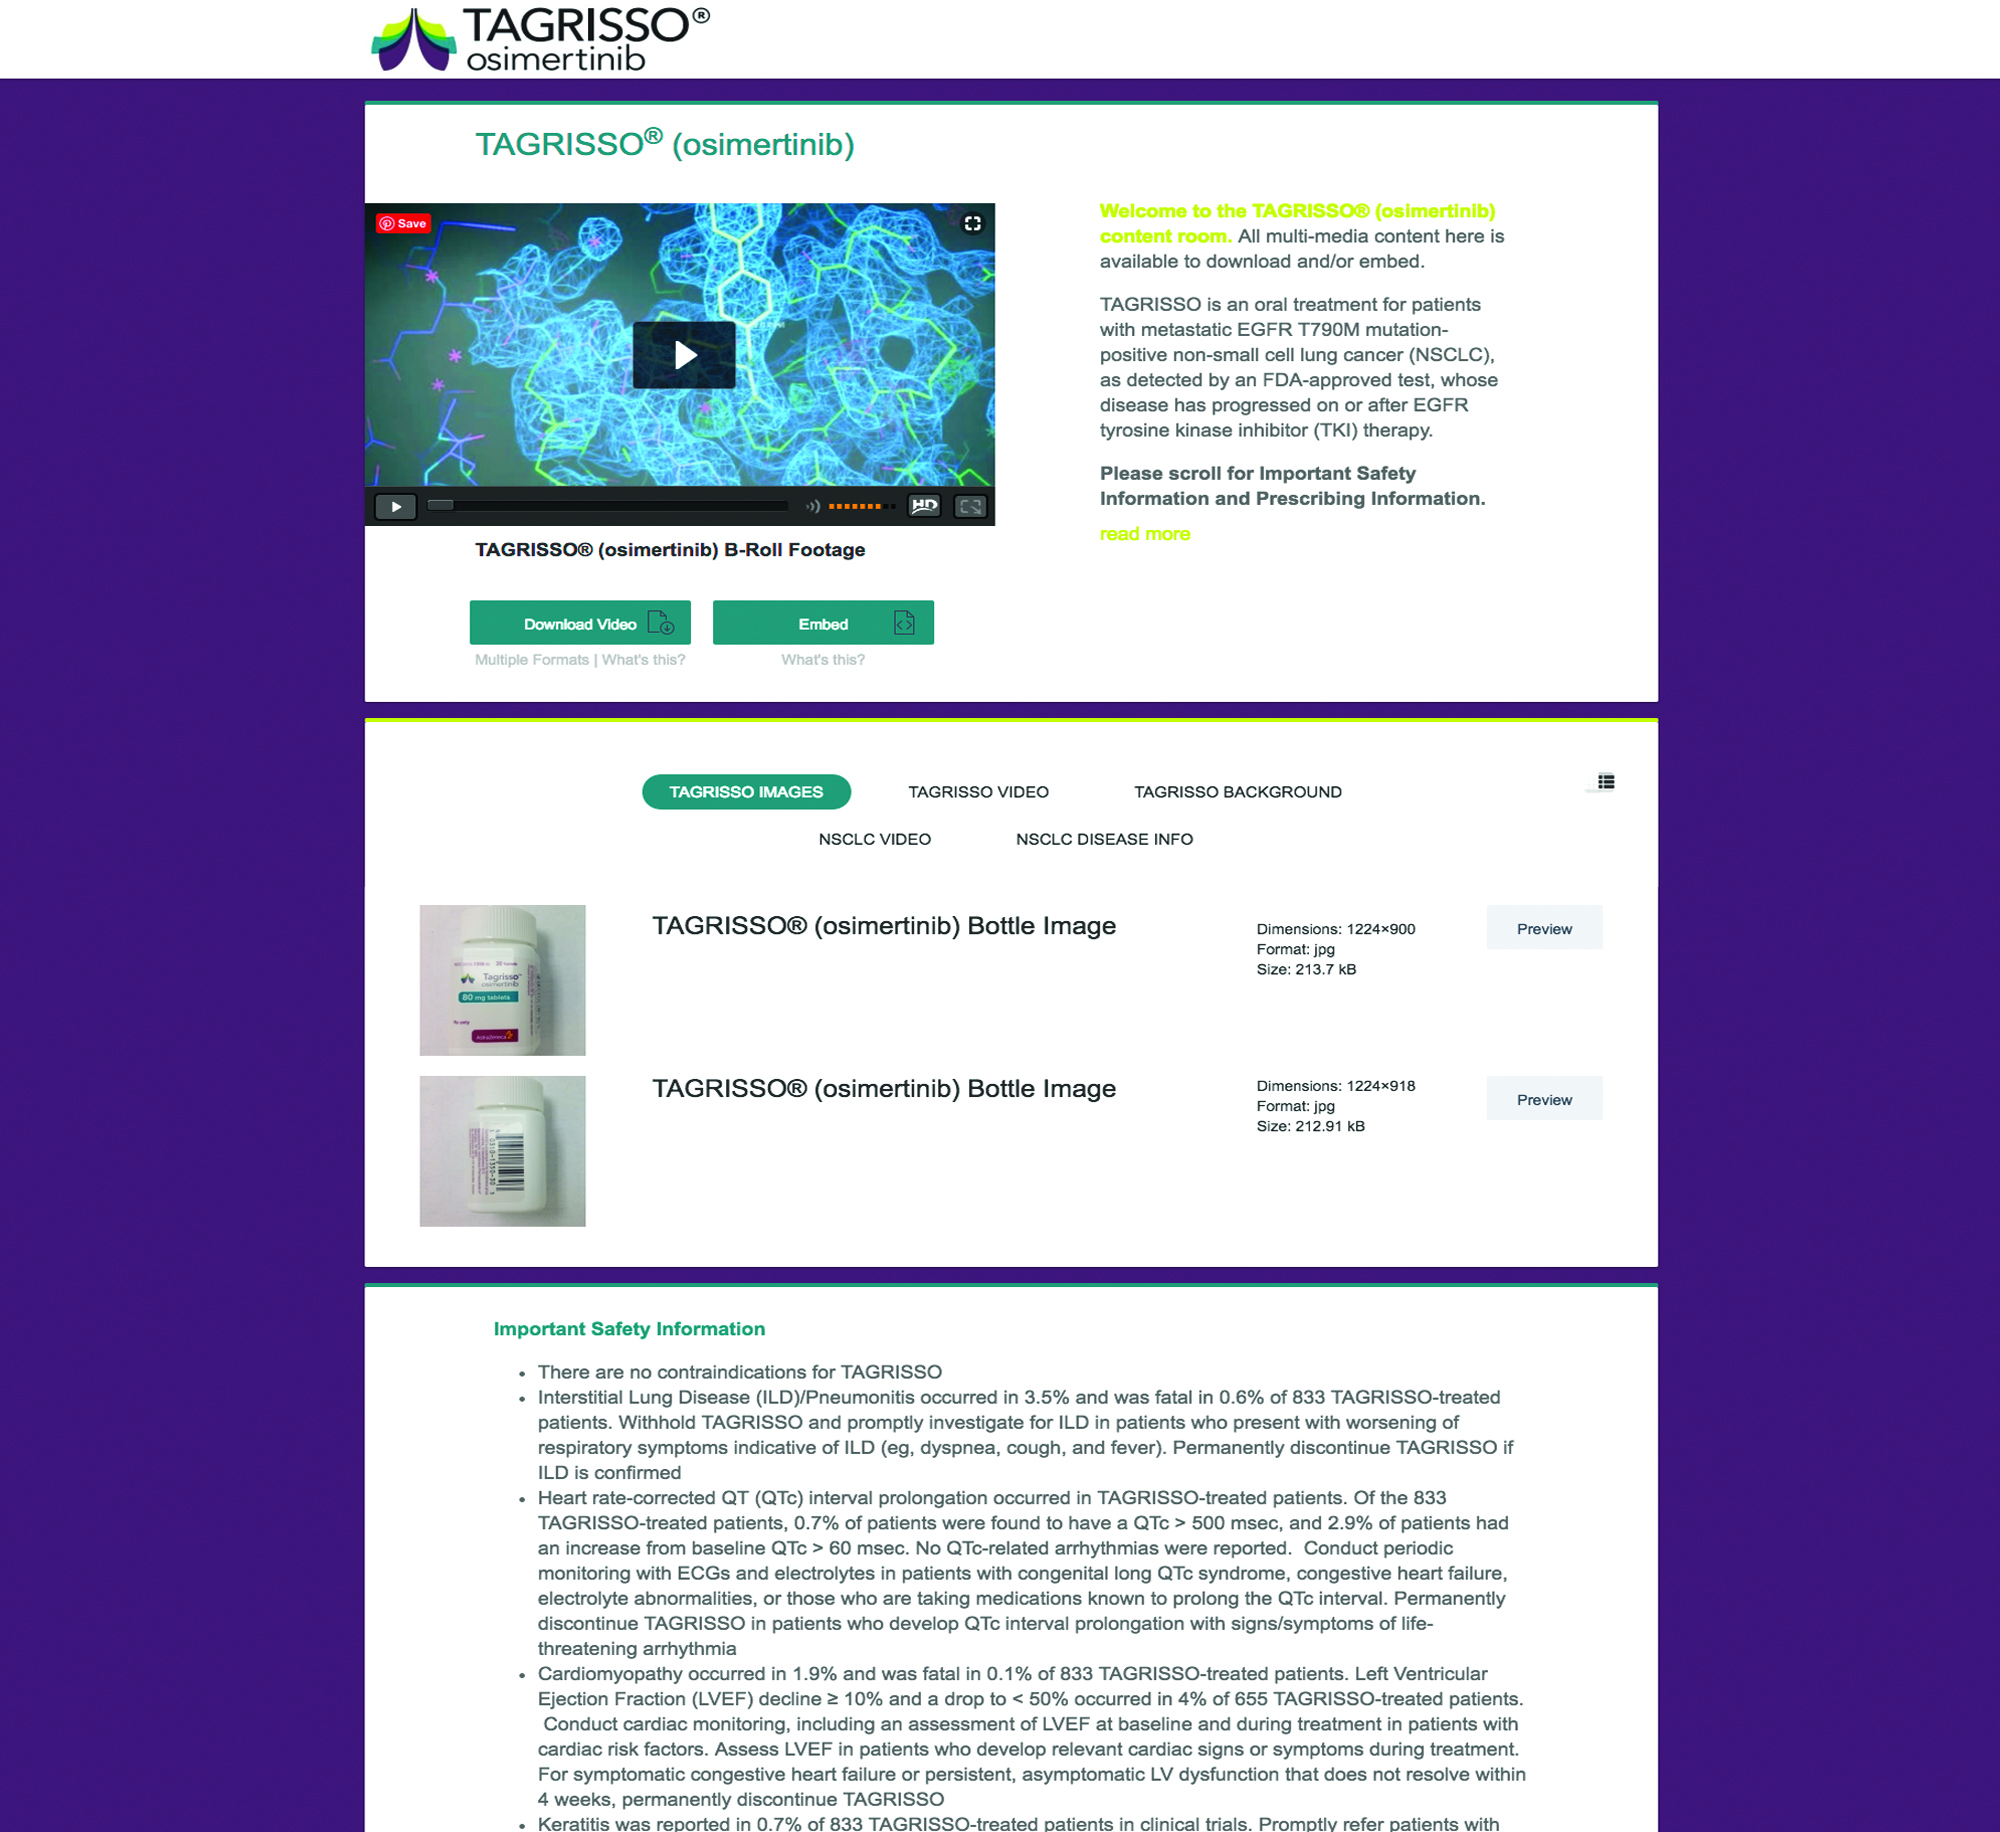 Pharma testedpharma approved - Tagrisso Product Launch Media Destination: URL distributed to media, whitelabel URL embedded in all documentation and materials. Immediate content control and download/embed tracking.